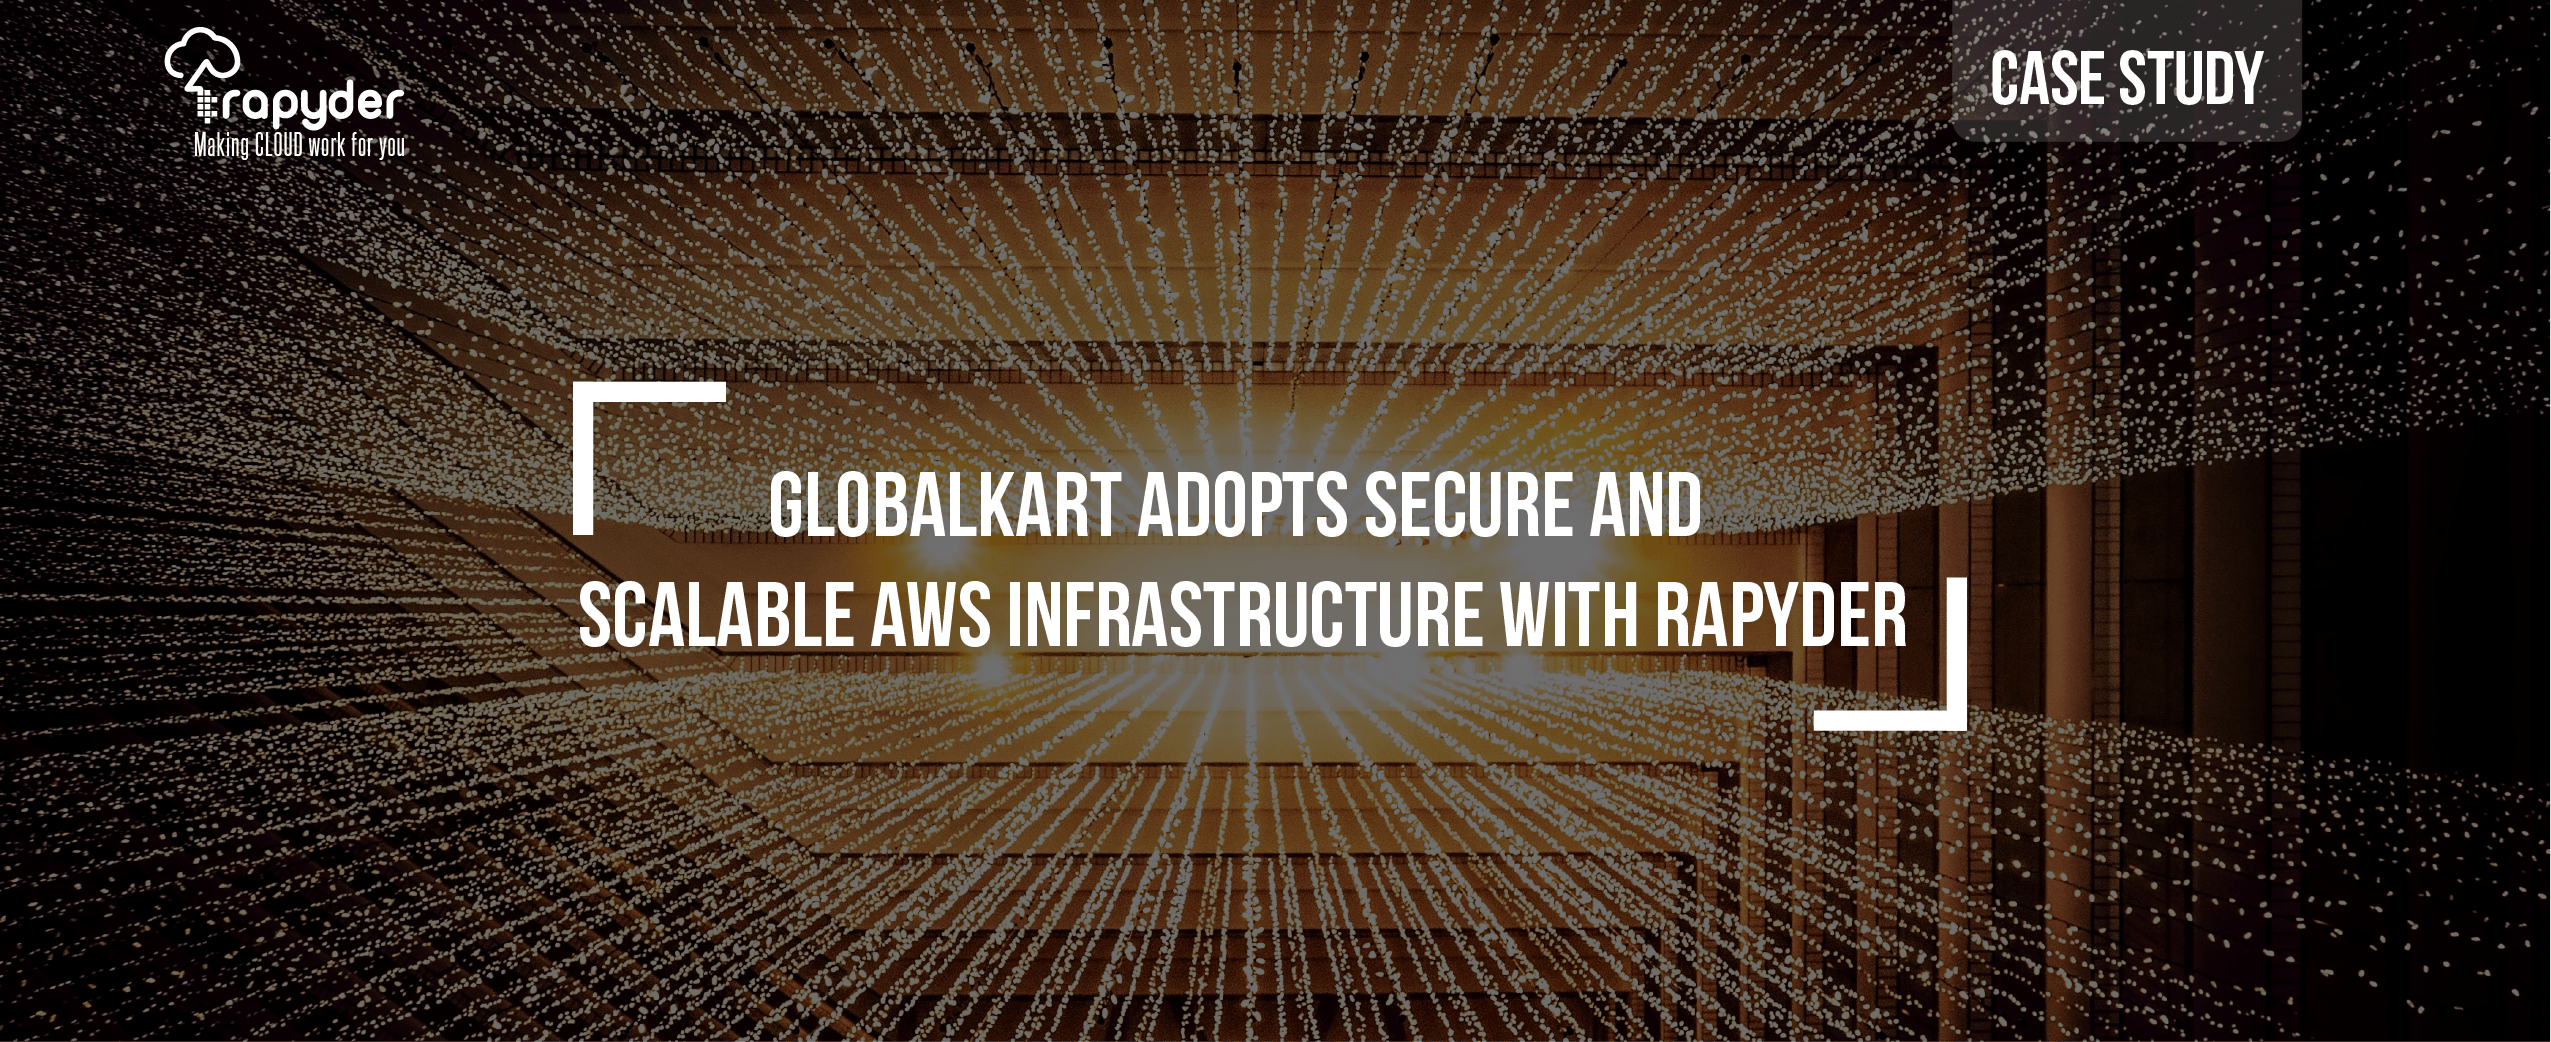 Case Study 12 09 - GlobalKart adopts Secure and Scalable AWS Infrastructure with Rapyder